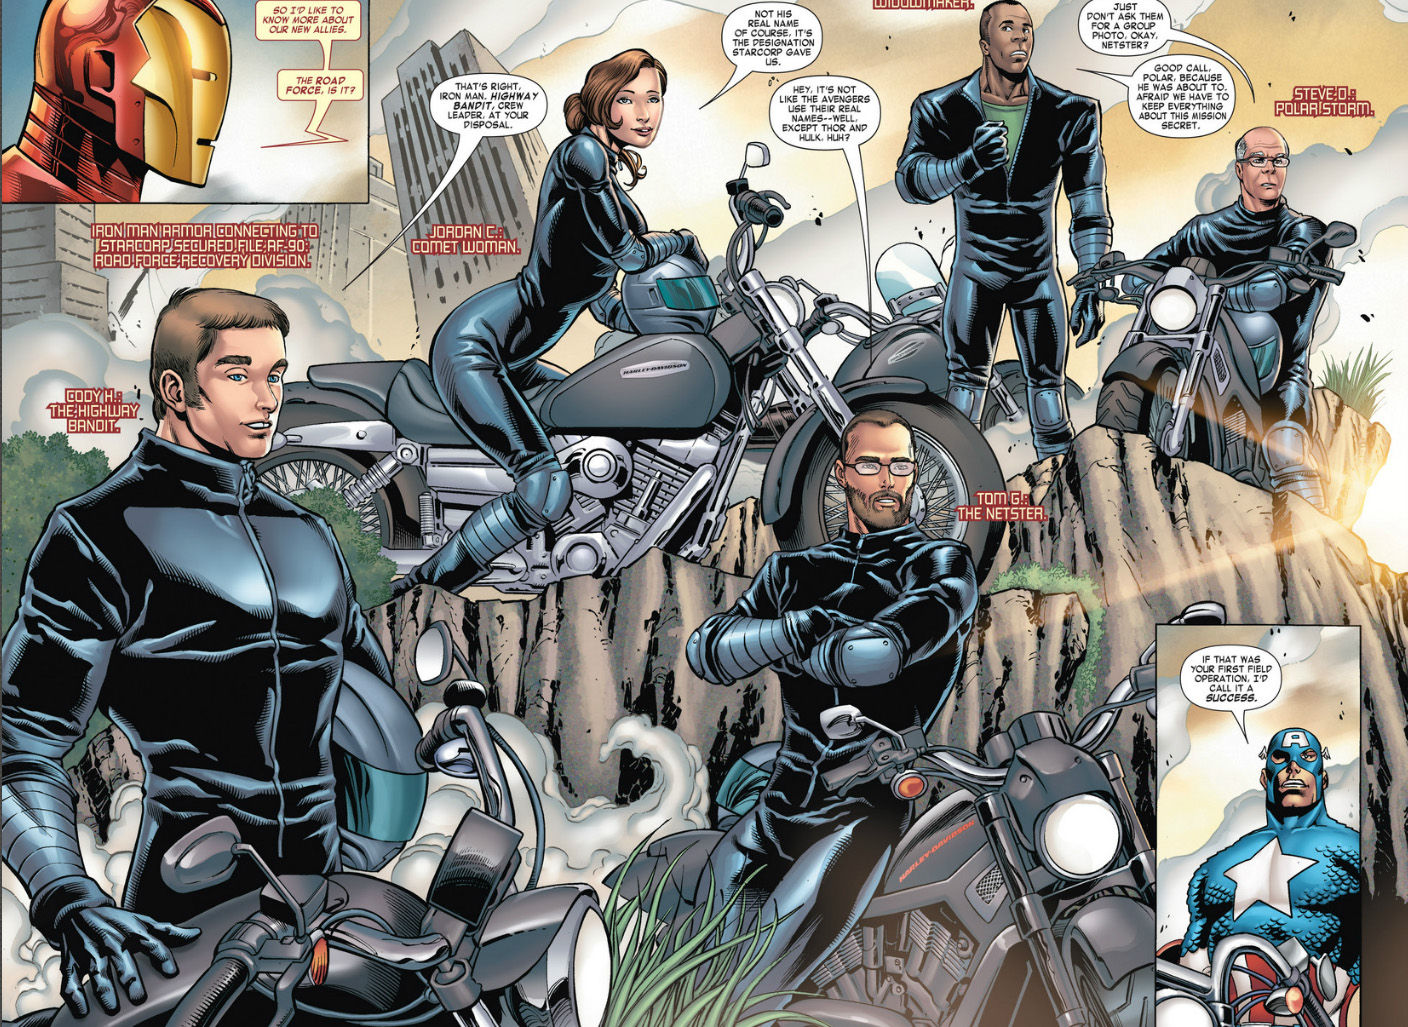 Road Force (Earth-616)/Gallery